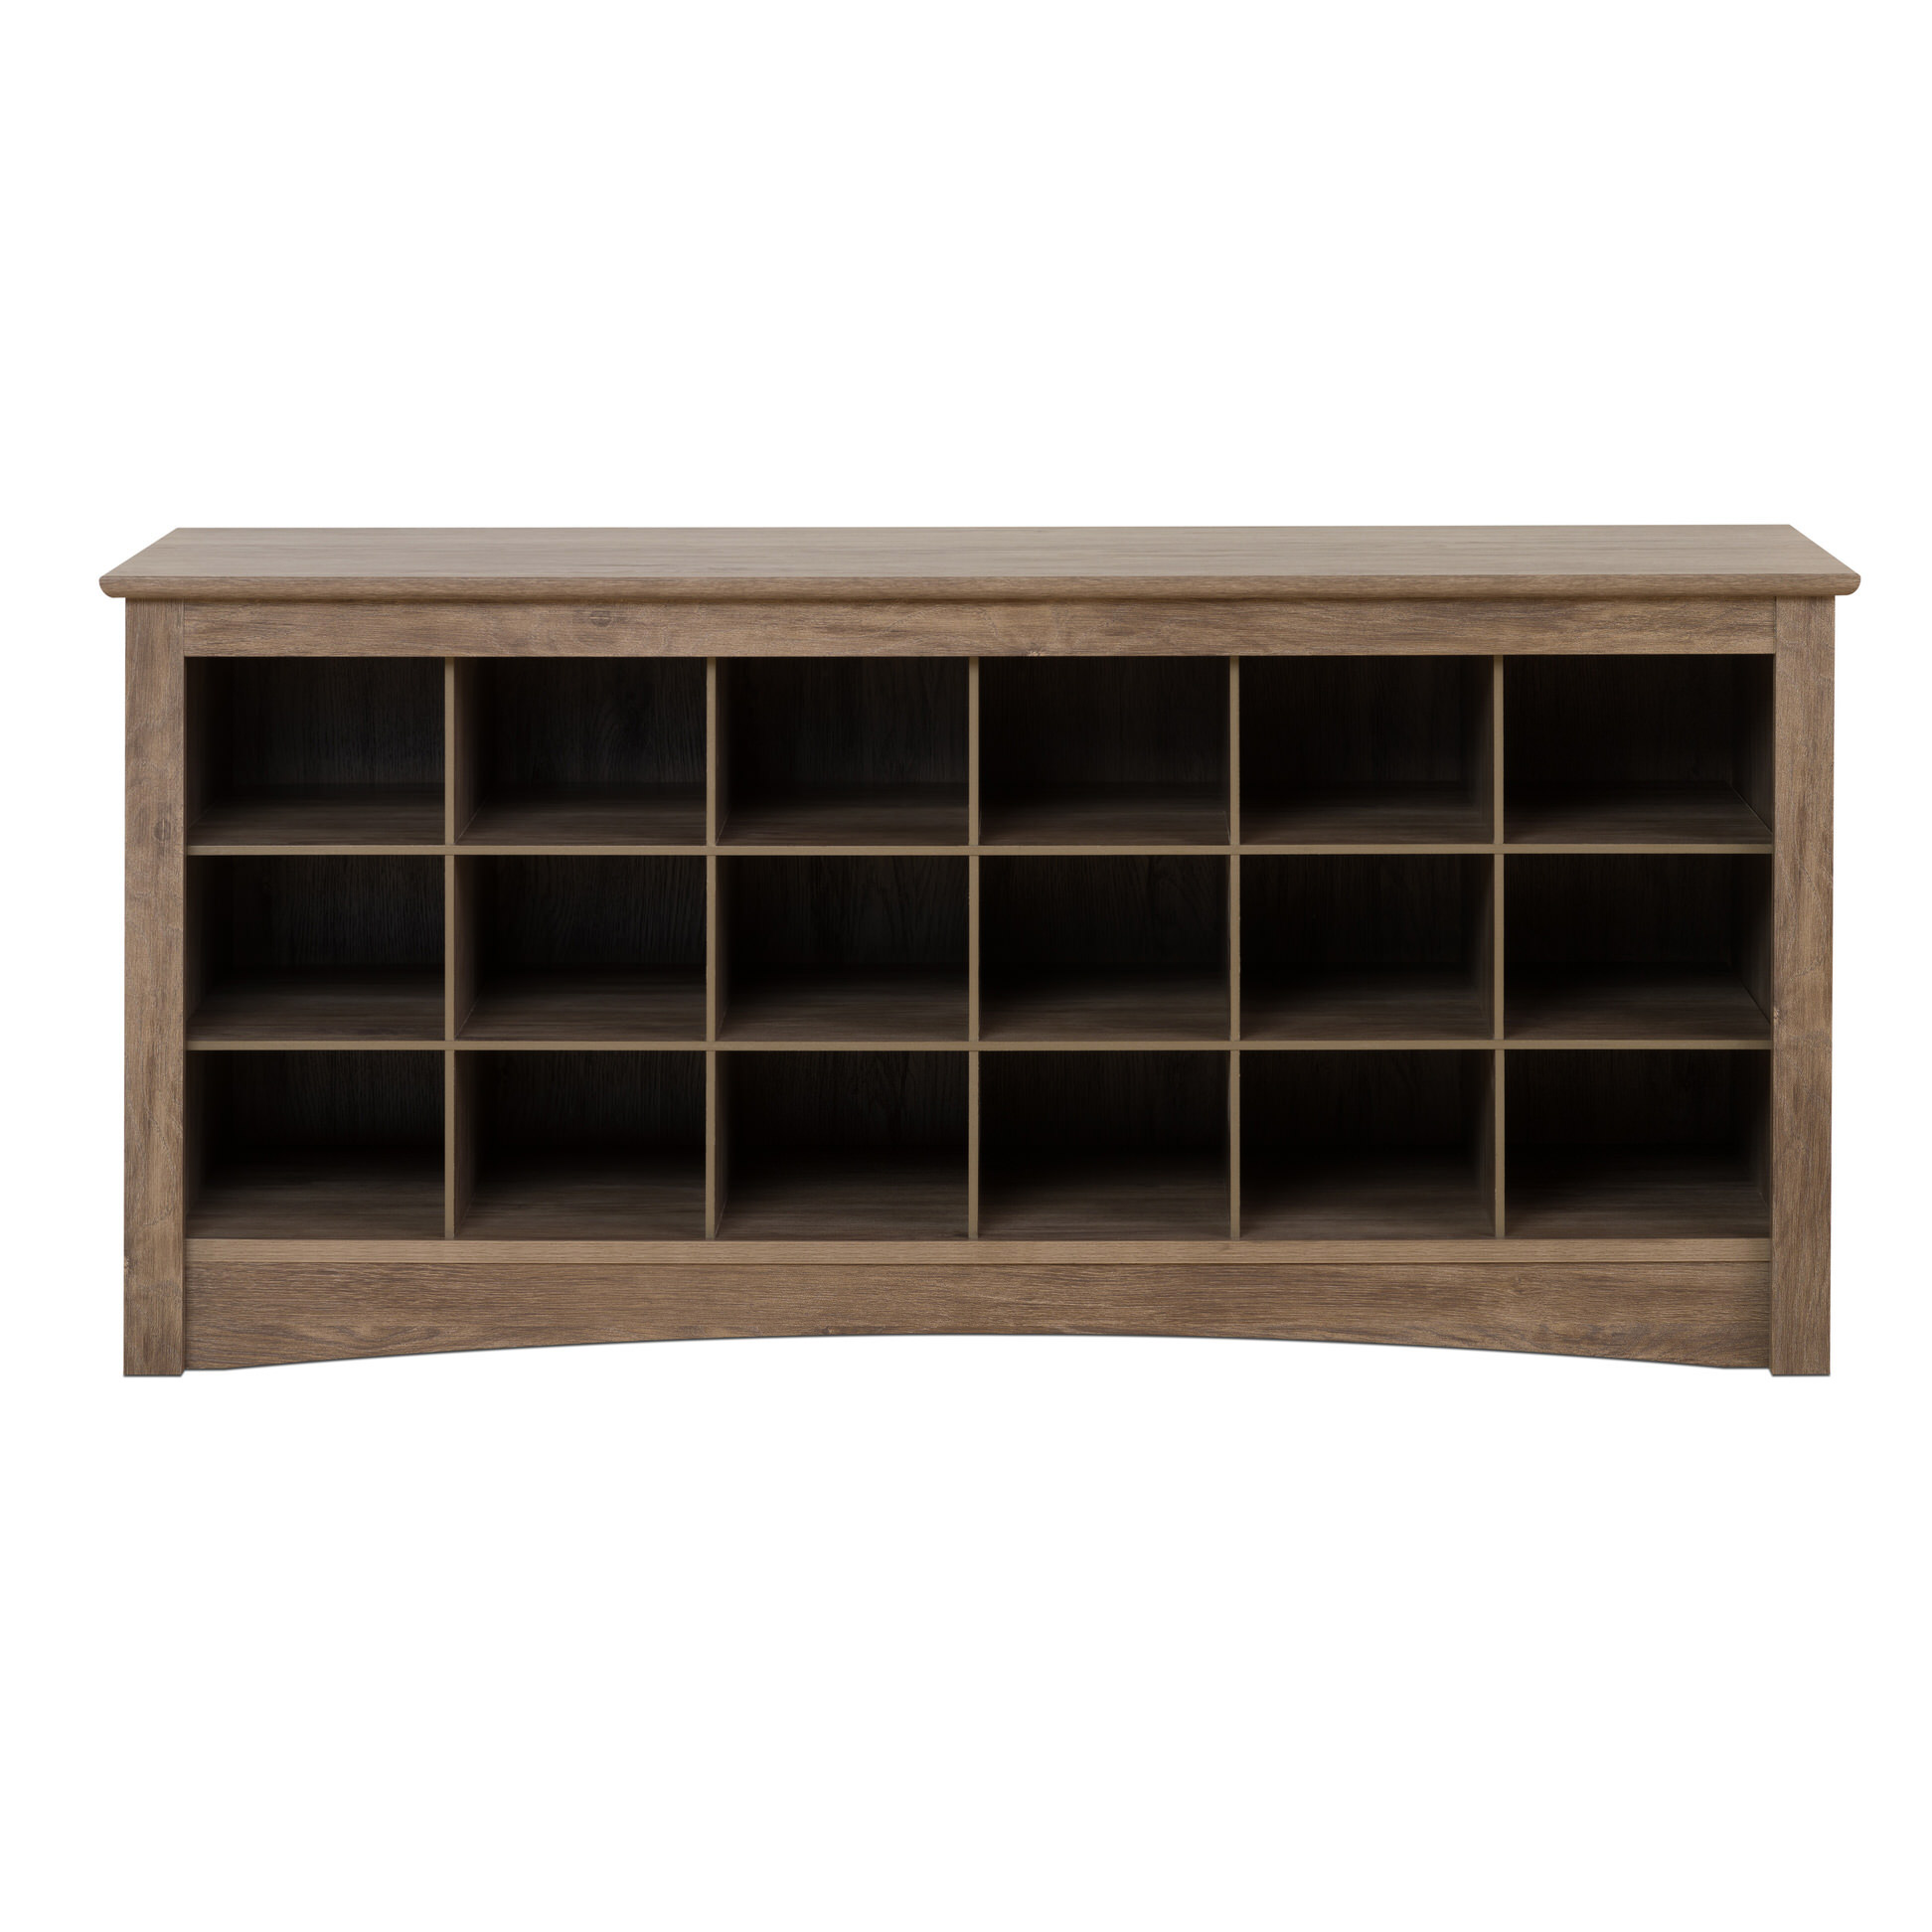 Black Shoe Cubby Bench